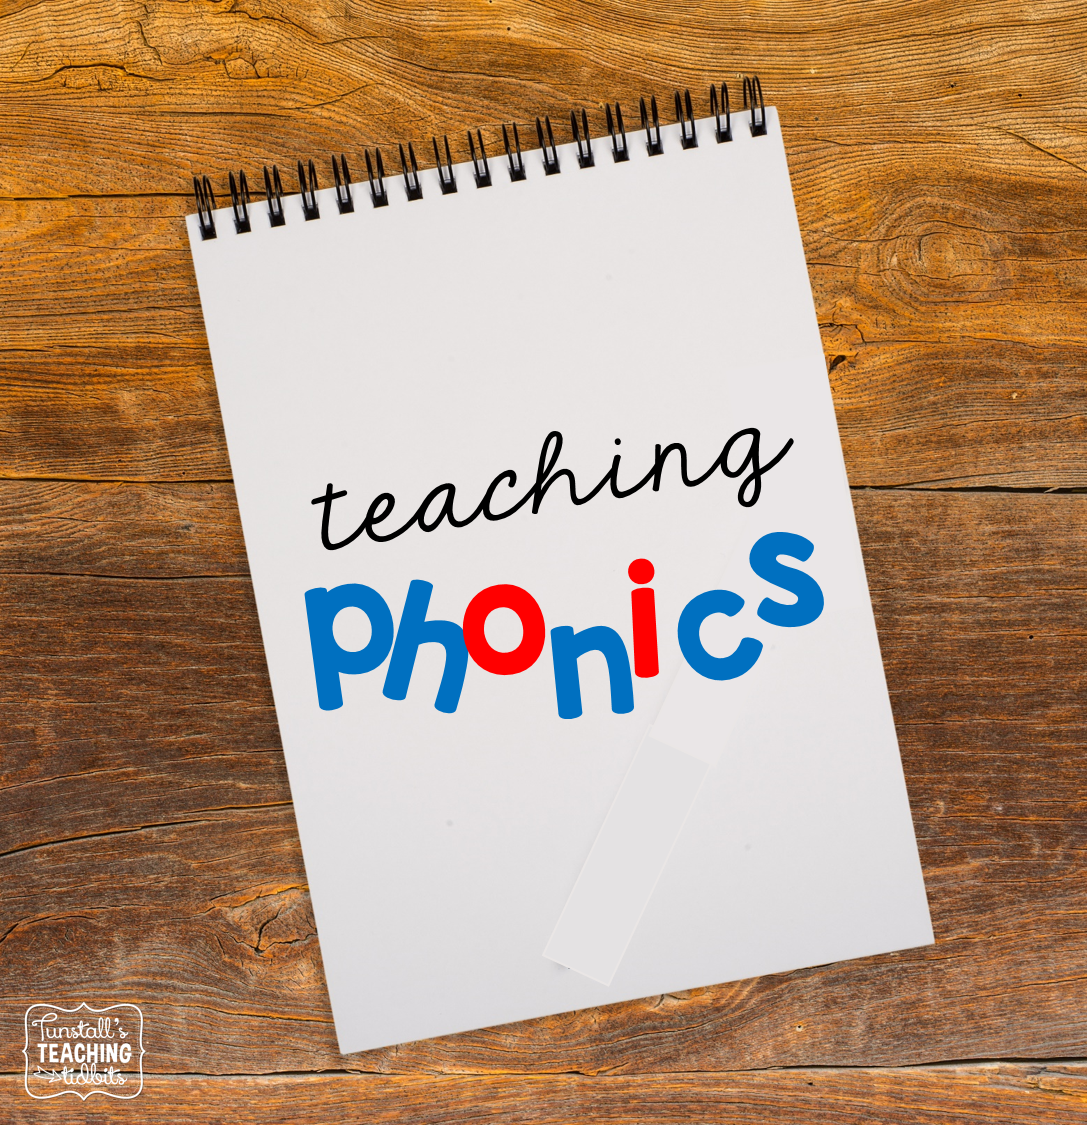 Lesson Planning Ideas: Teaching Phonics - Tunstall's Teaching Tidbits [ 1125 x 1087 Pixel ]